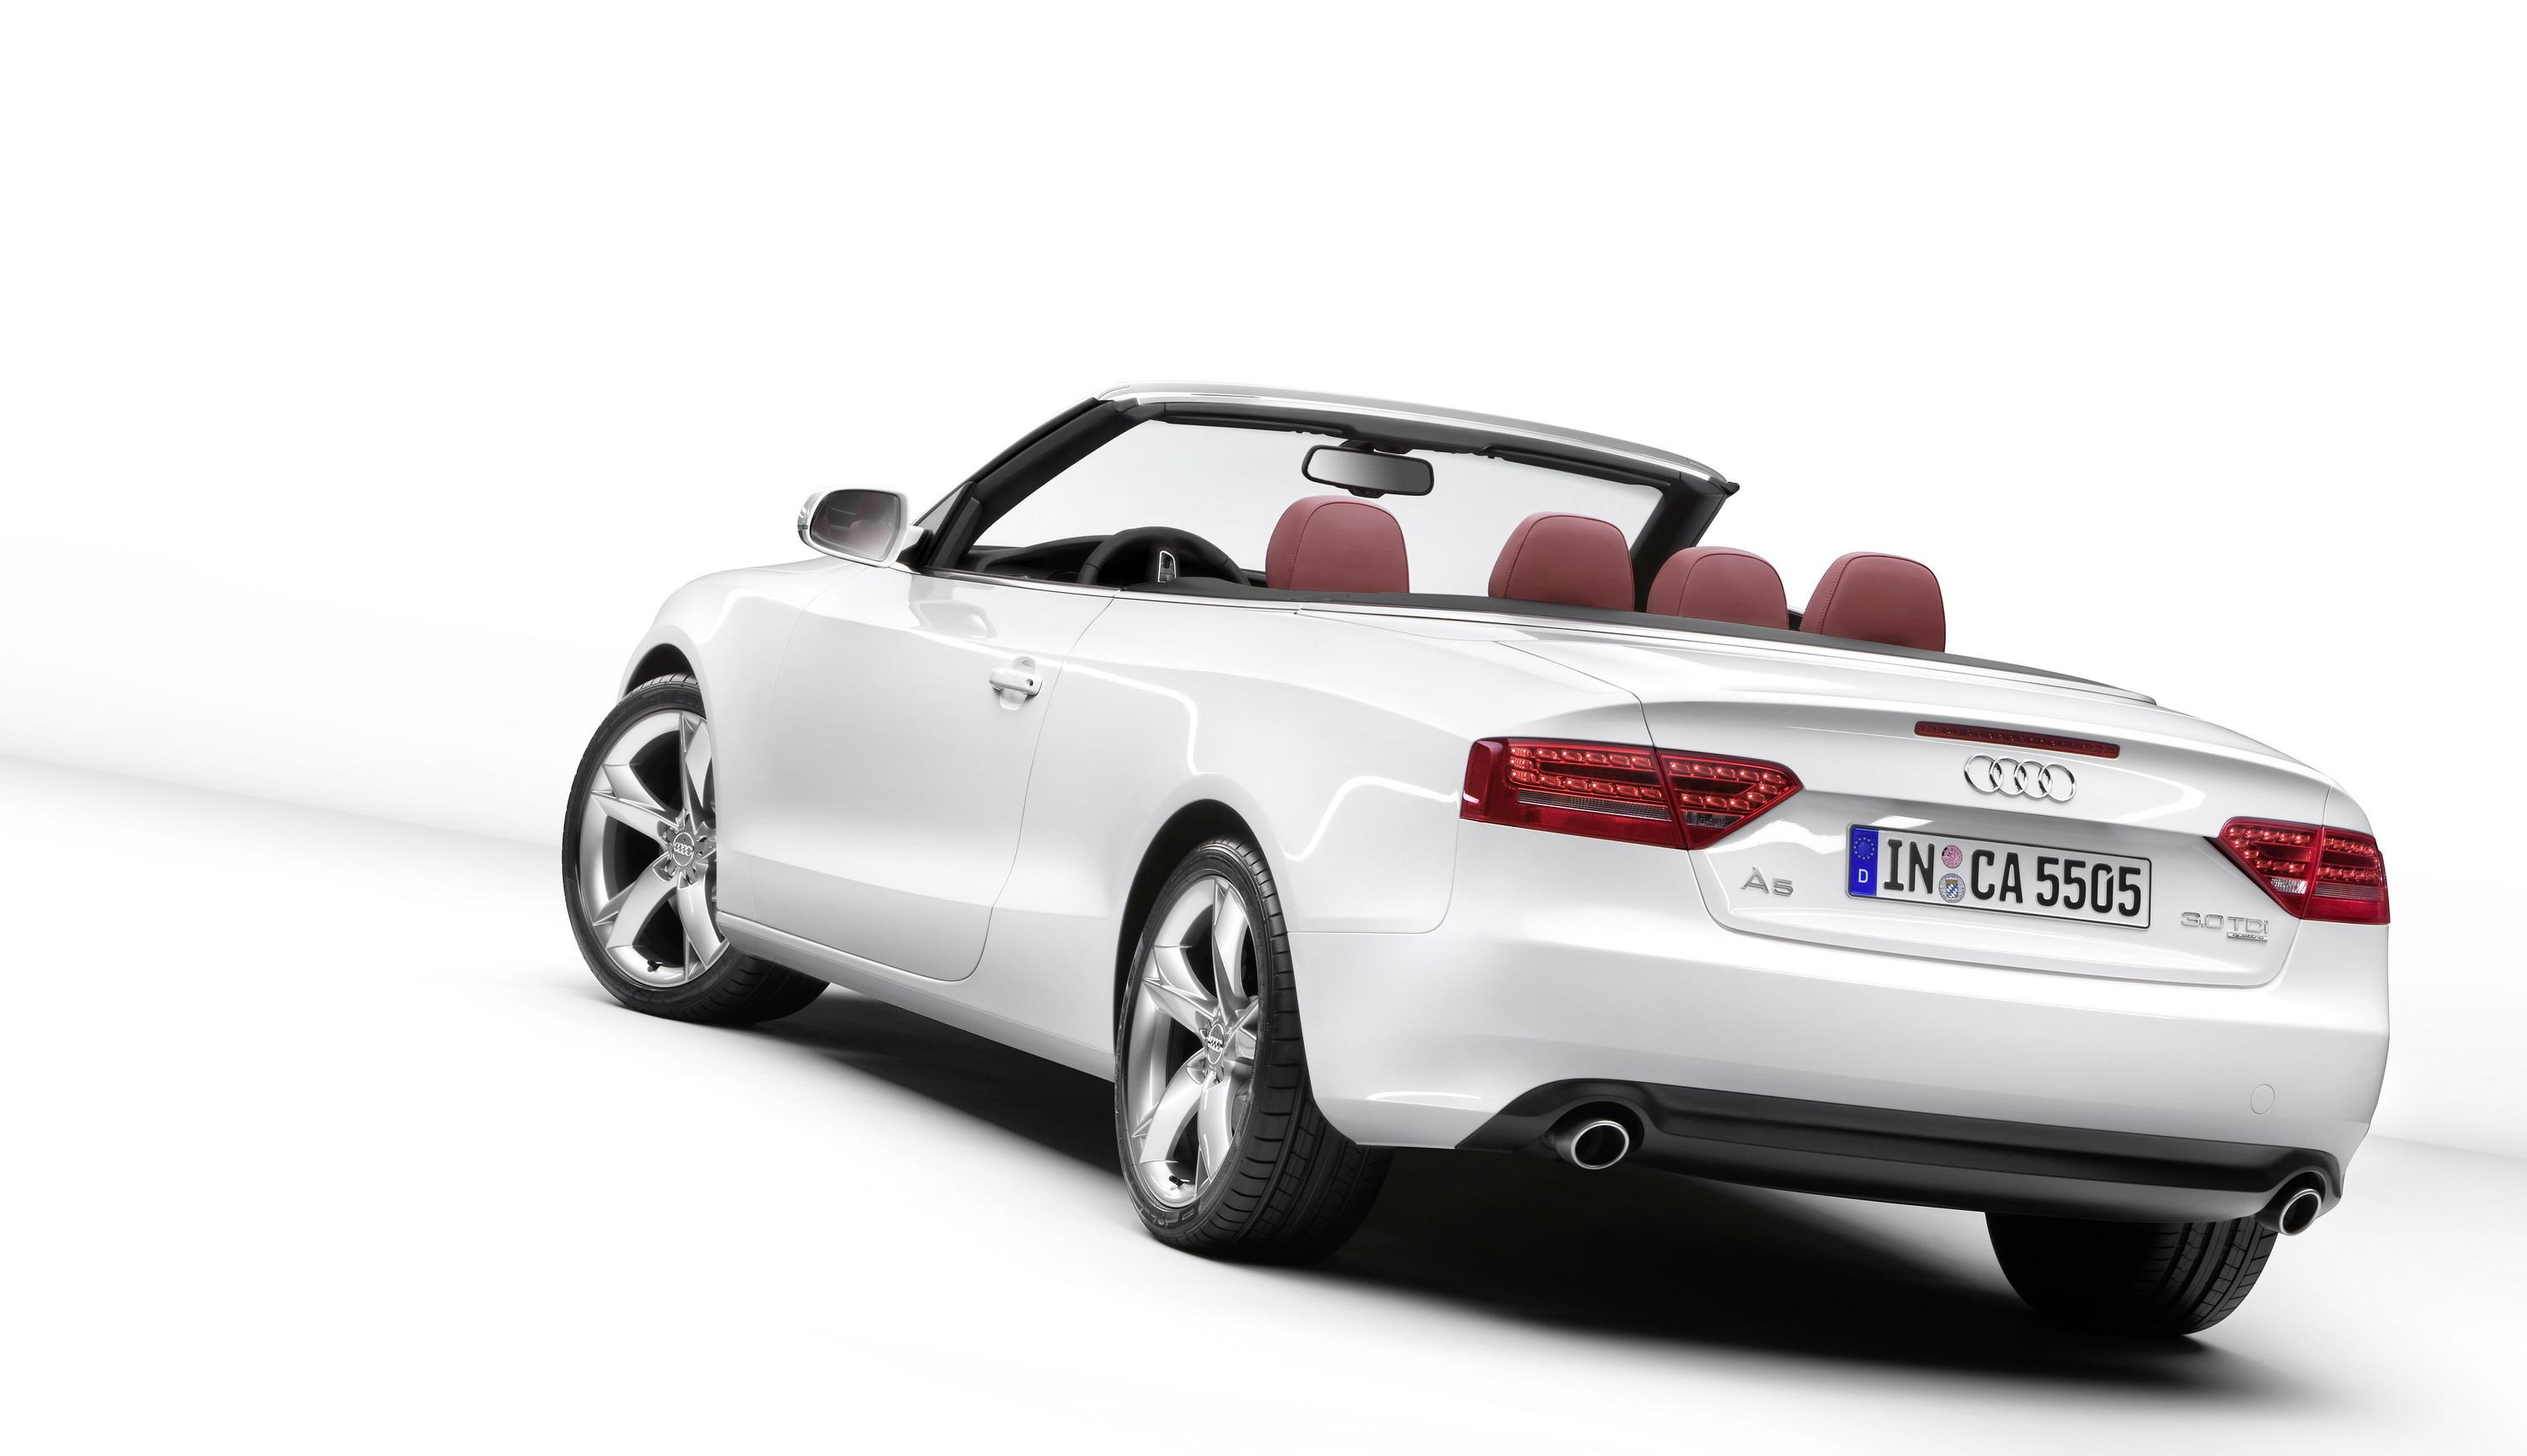 2009 audi a5 s5 convertible gallery 275983 top speed. Black Bedroom Furniture Sets. Home Design Ideas